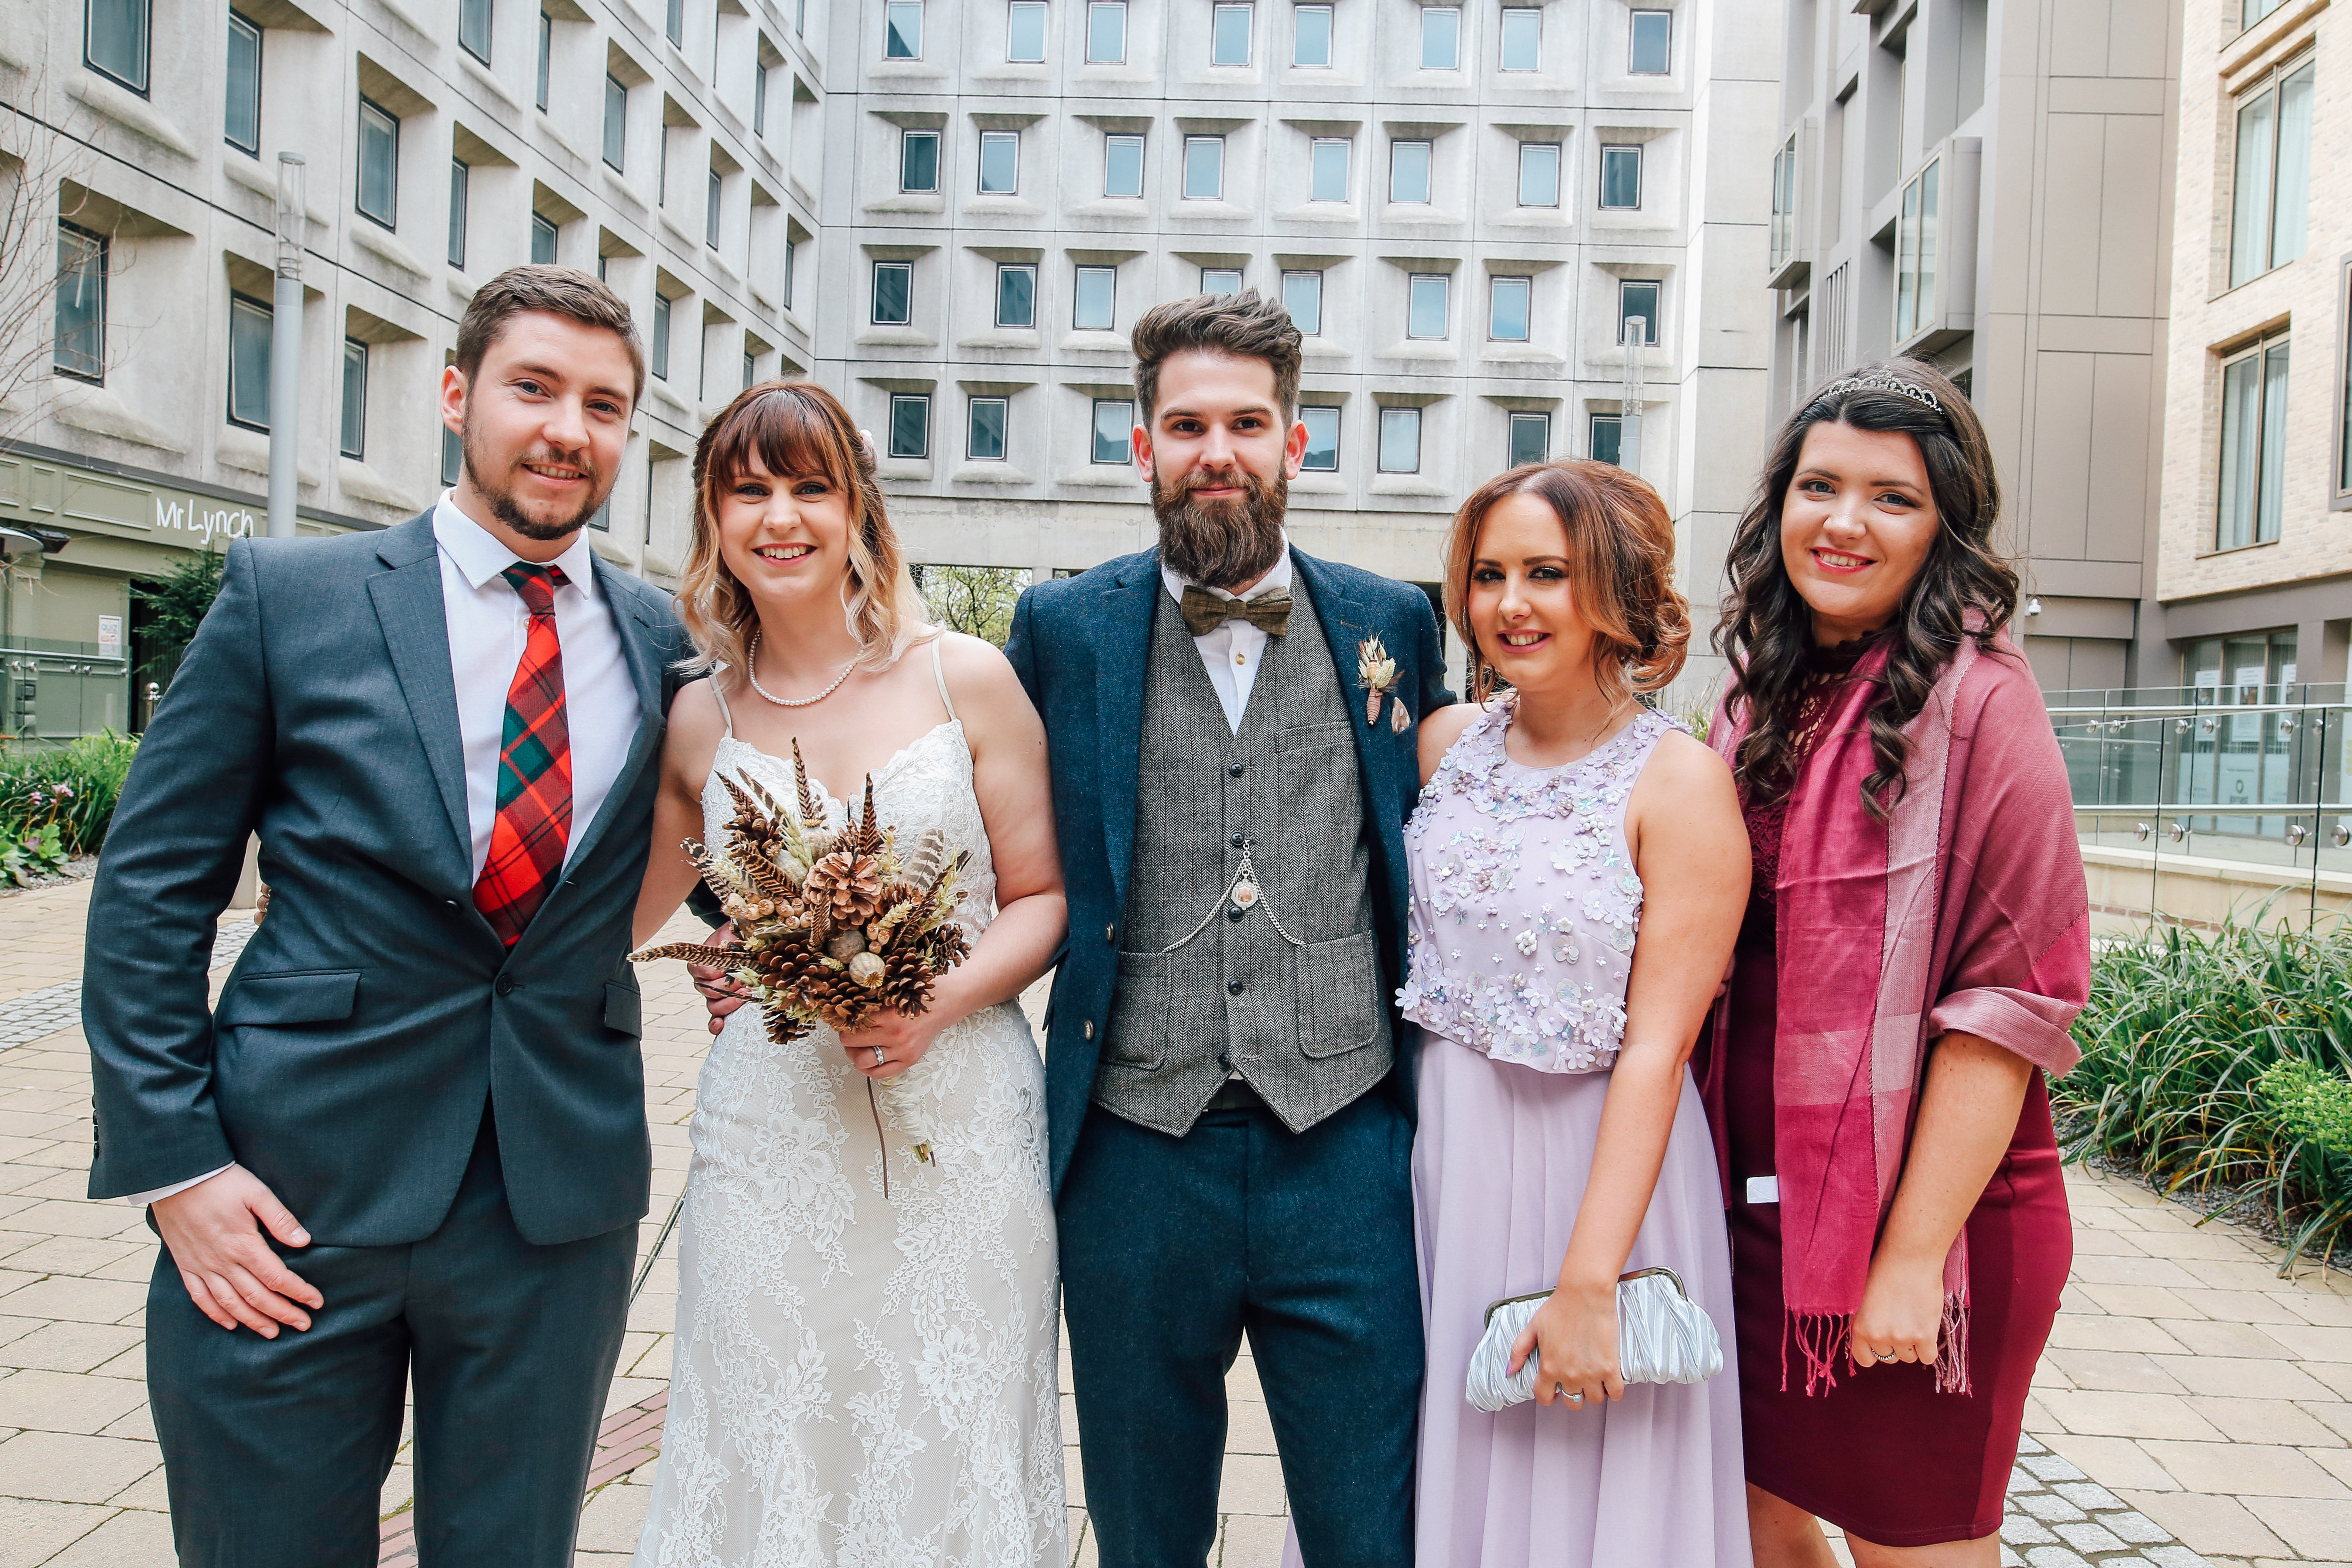 Wedding Photographer Manchester at As You Like It